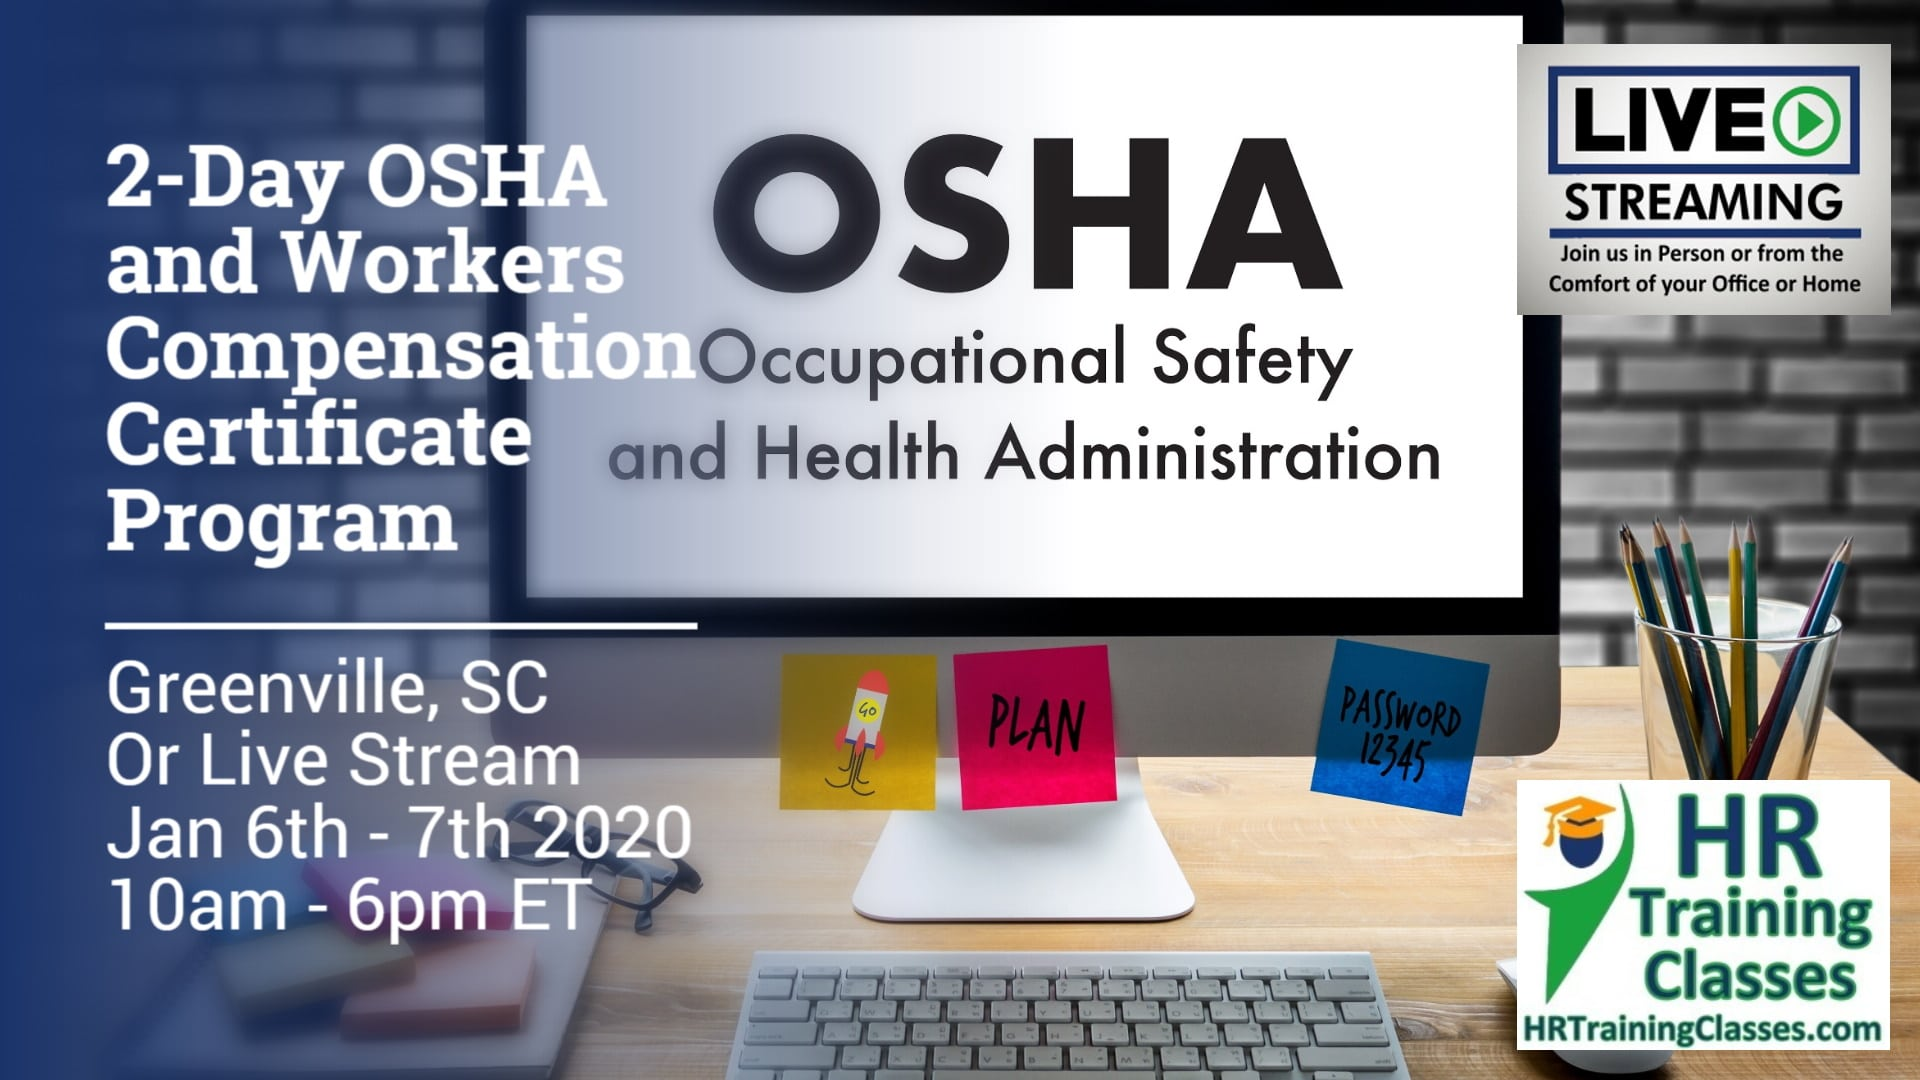 2 Day OSHA and Workers Compensation Certificate Program with Elga Lejarza-Penn in Greenville SC or join us online via Live Stream Webinar Starting January 6 2020